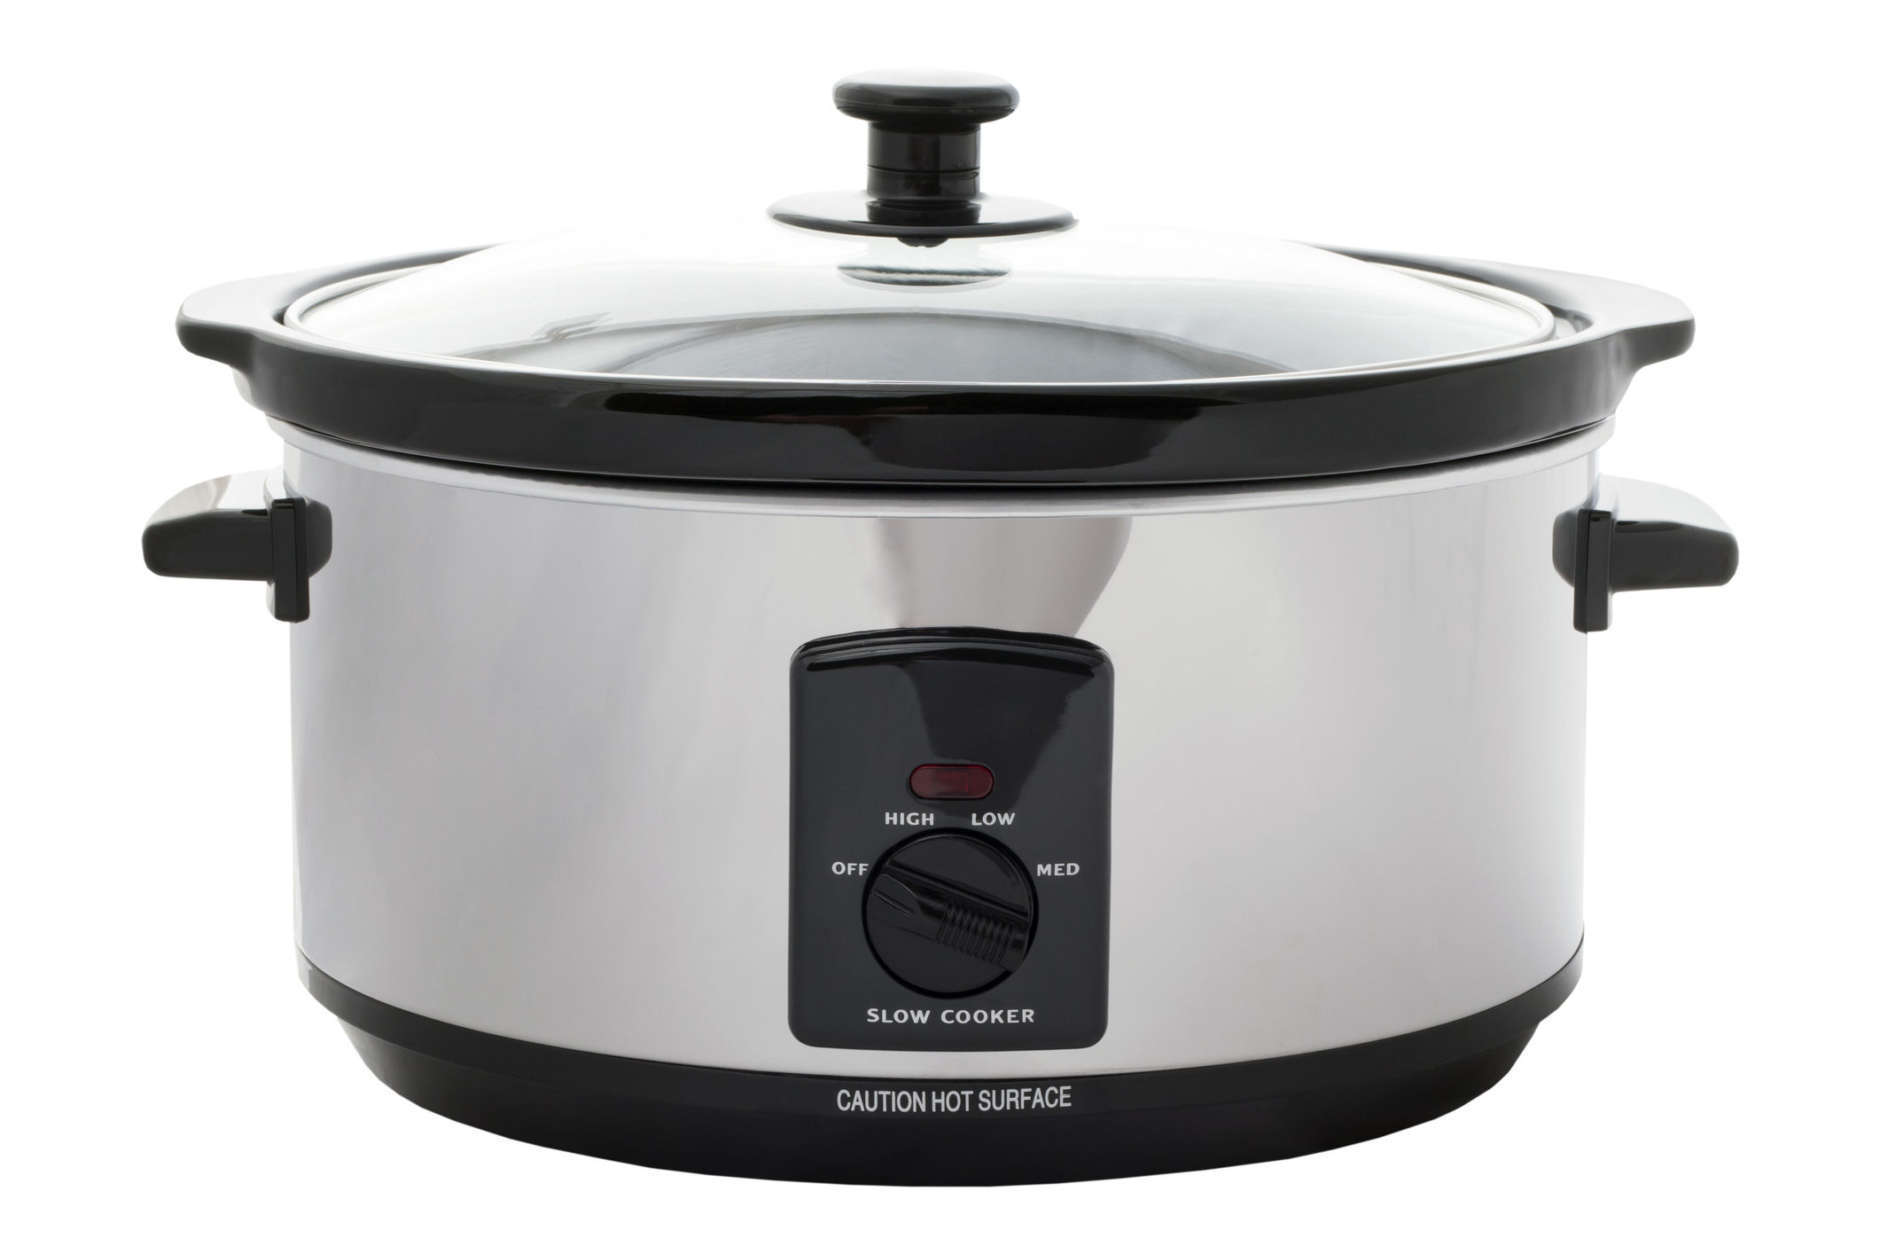 Slow cooker on an isolated white background with a clipping path